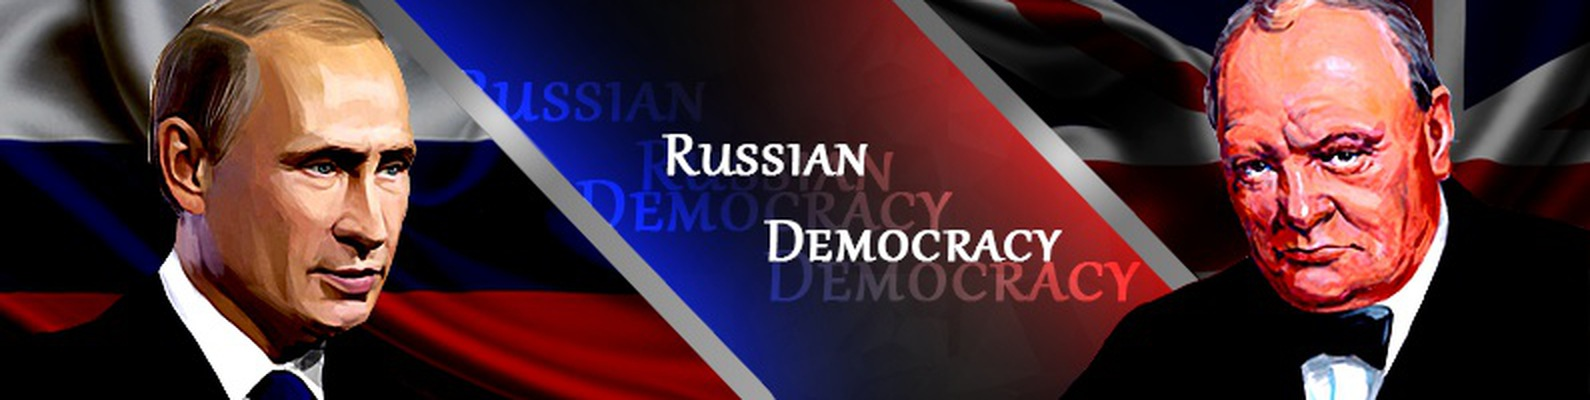 russian democracy Twenty years ago, the soviet union died today, russian democracy is just as dead.